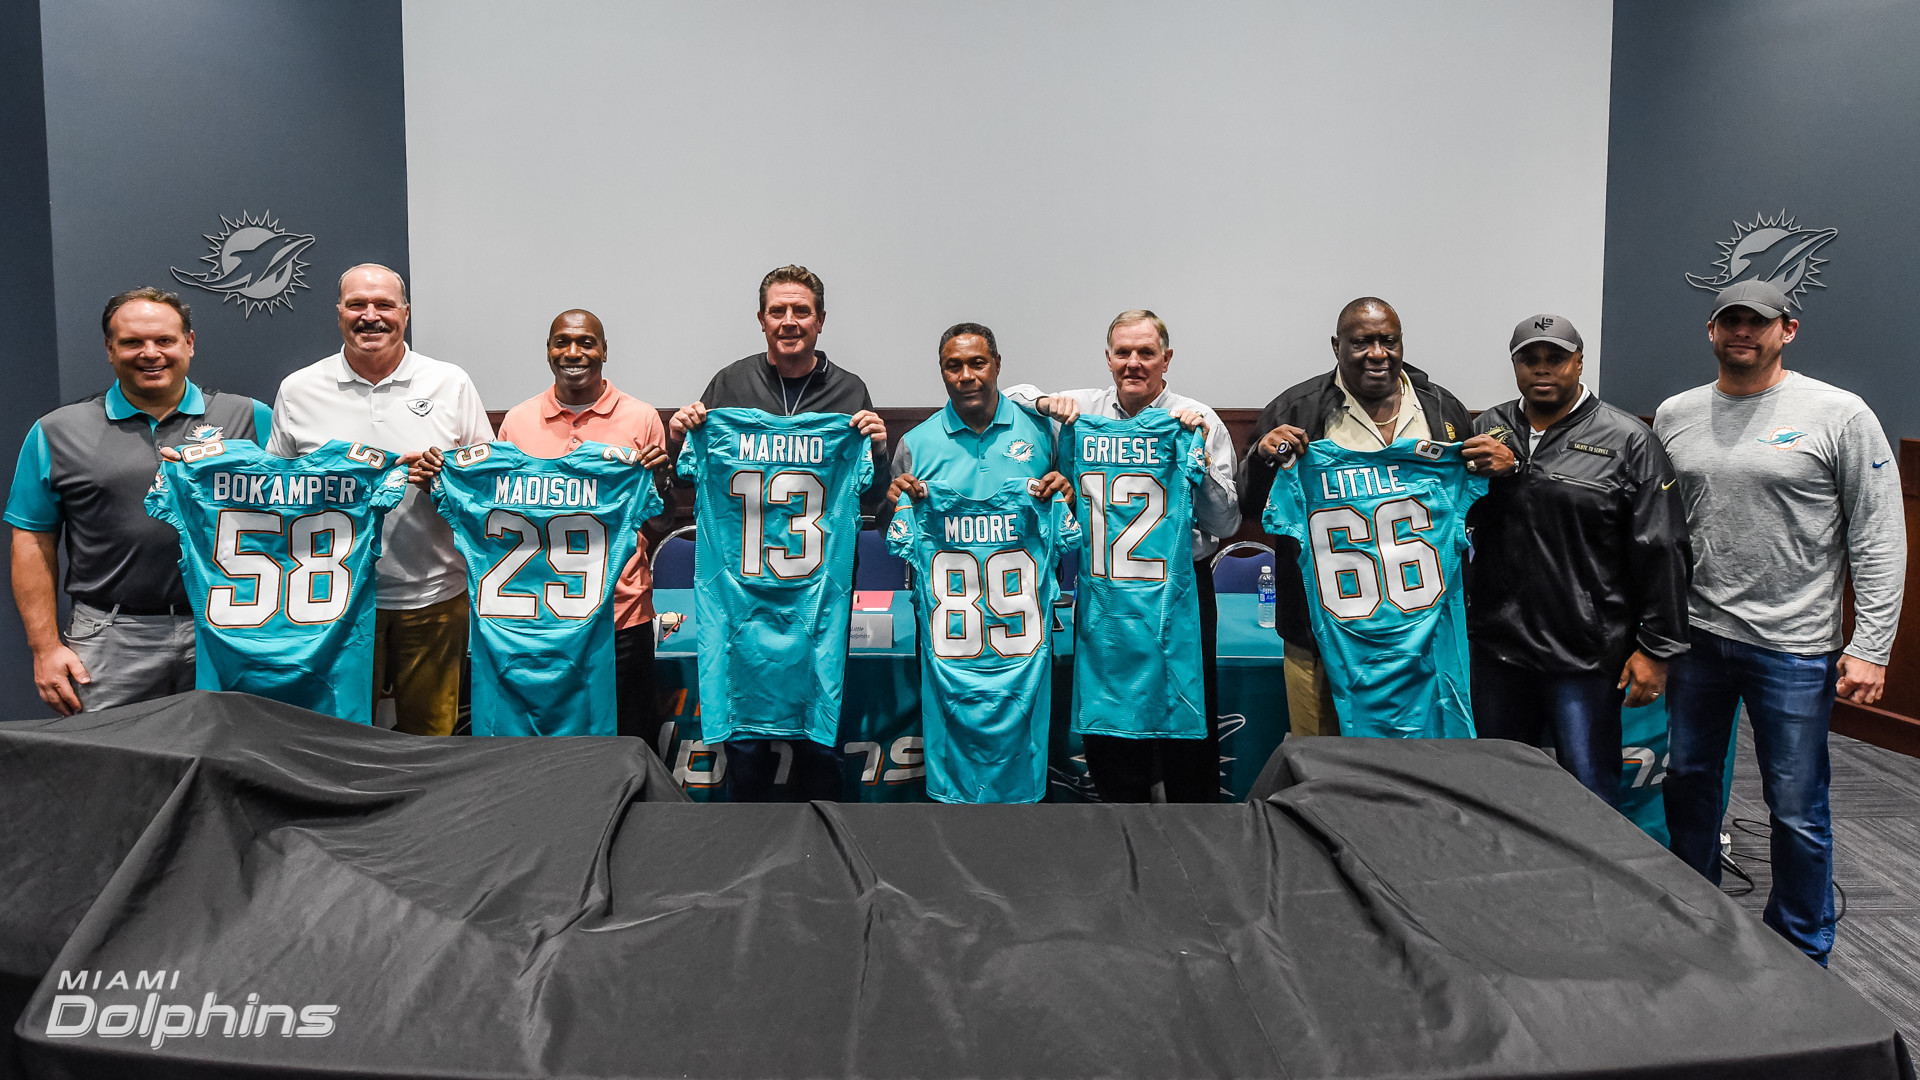 Sfl-gallery-six-past-stars-sign-final-contract-with-miami-dolphins-20170222